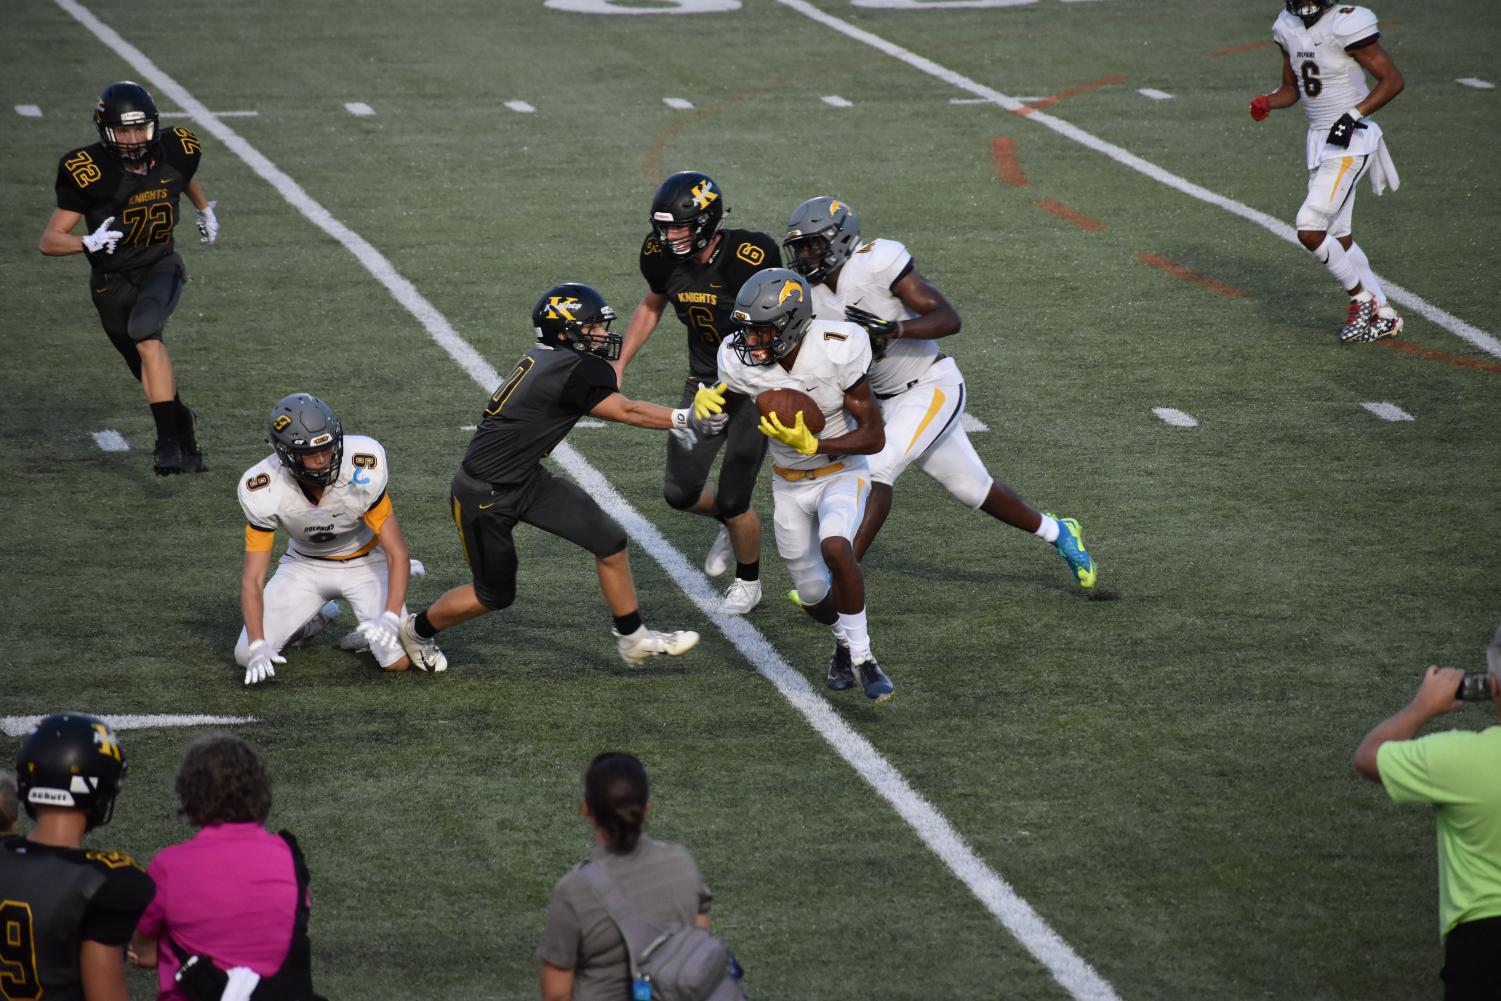 Junior Myles Alston (#1) runs past Kellam players at Kellam High School on Sept. 4.